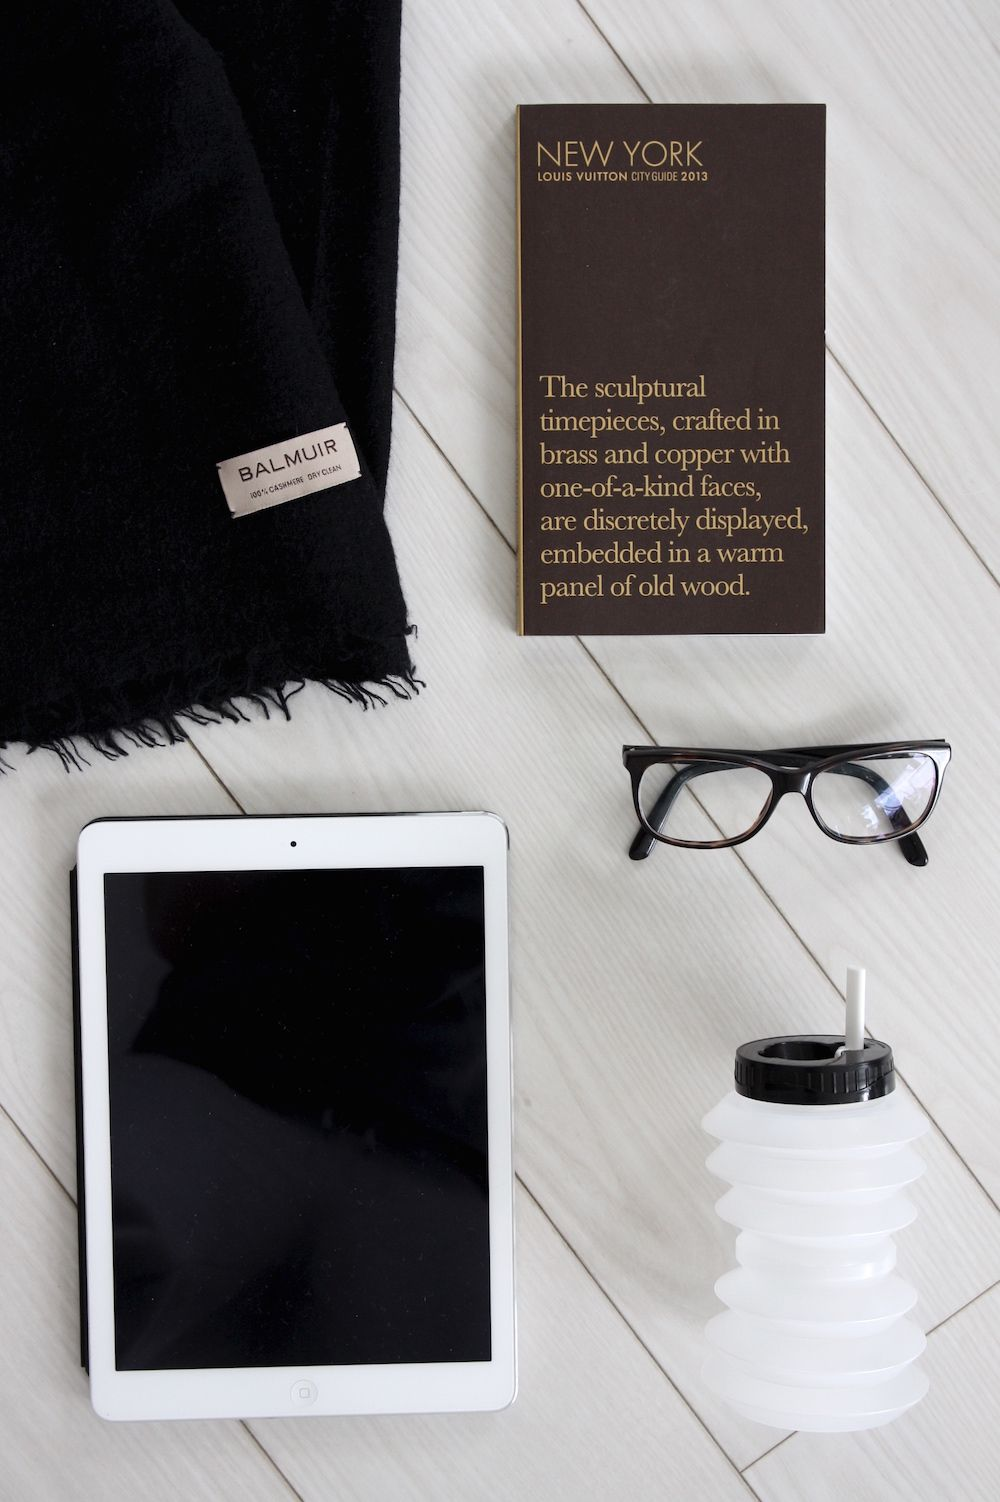 Homevialaura   Travel essentials: carry-on   Balmuir Helsinki scarf   Louis Vuitton City Guide   Ohyo water bottle   iPad